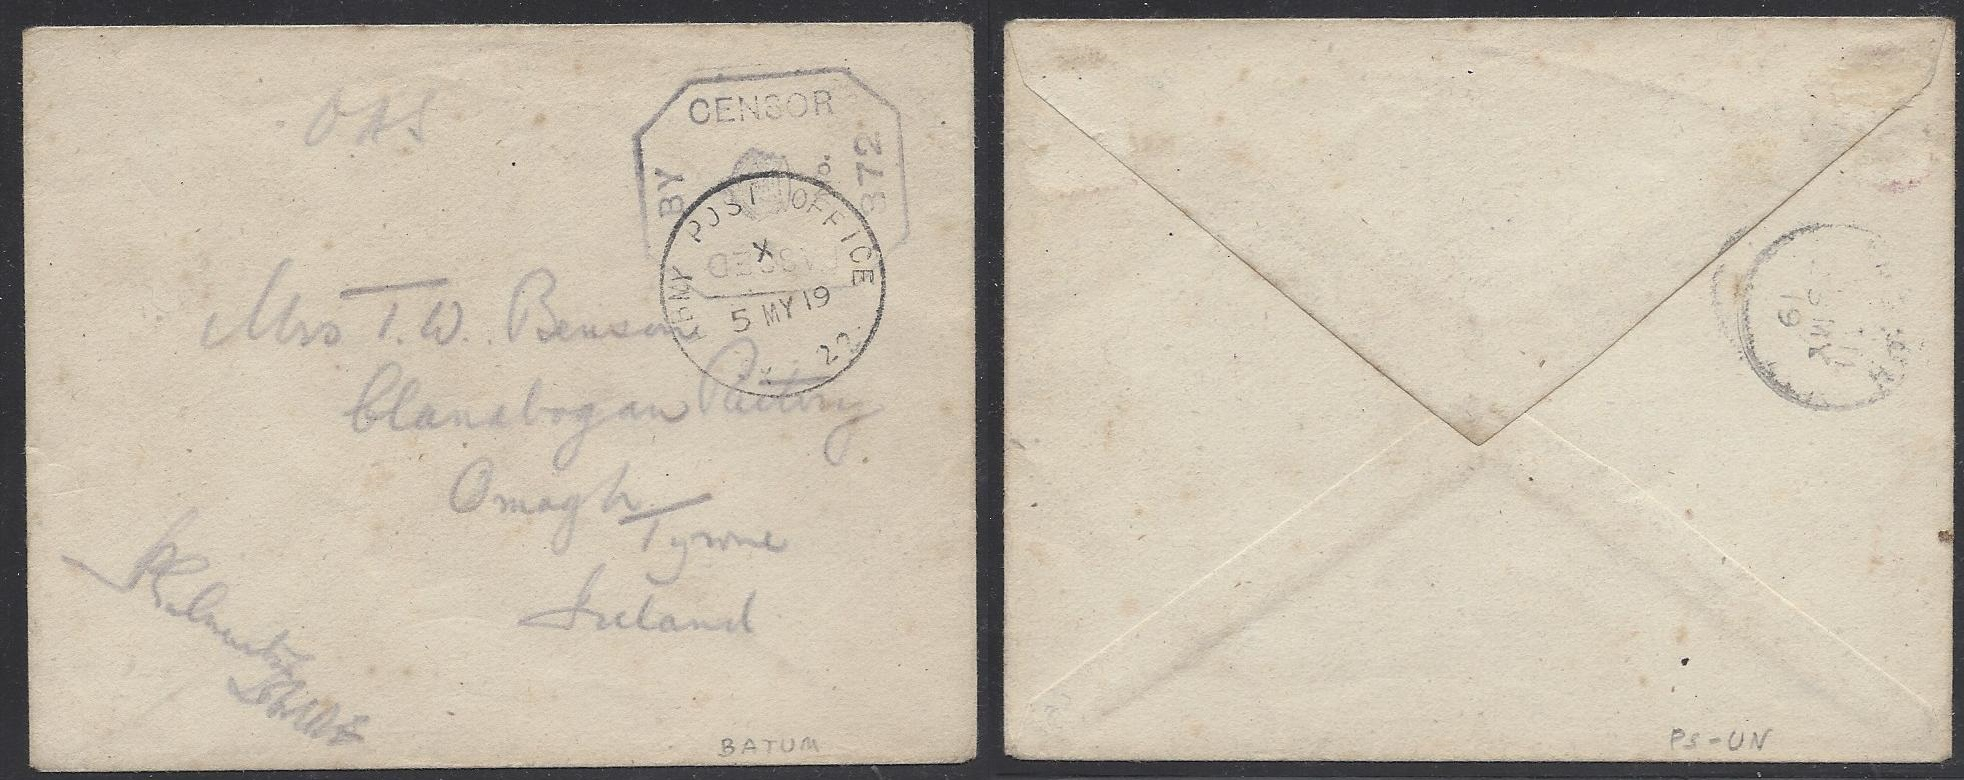 Russia Postal History - Allied Intervention. British forces in Caucasus Scott 02